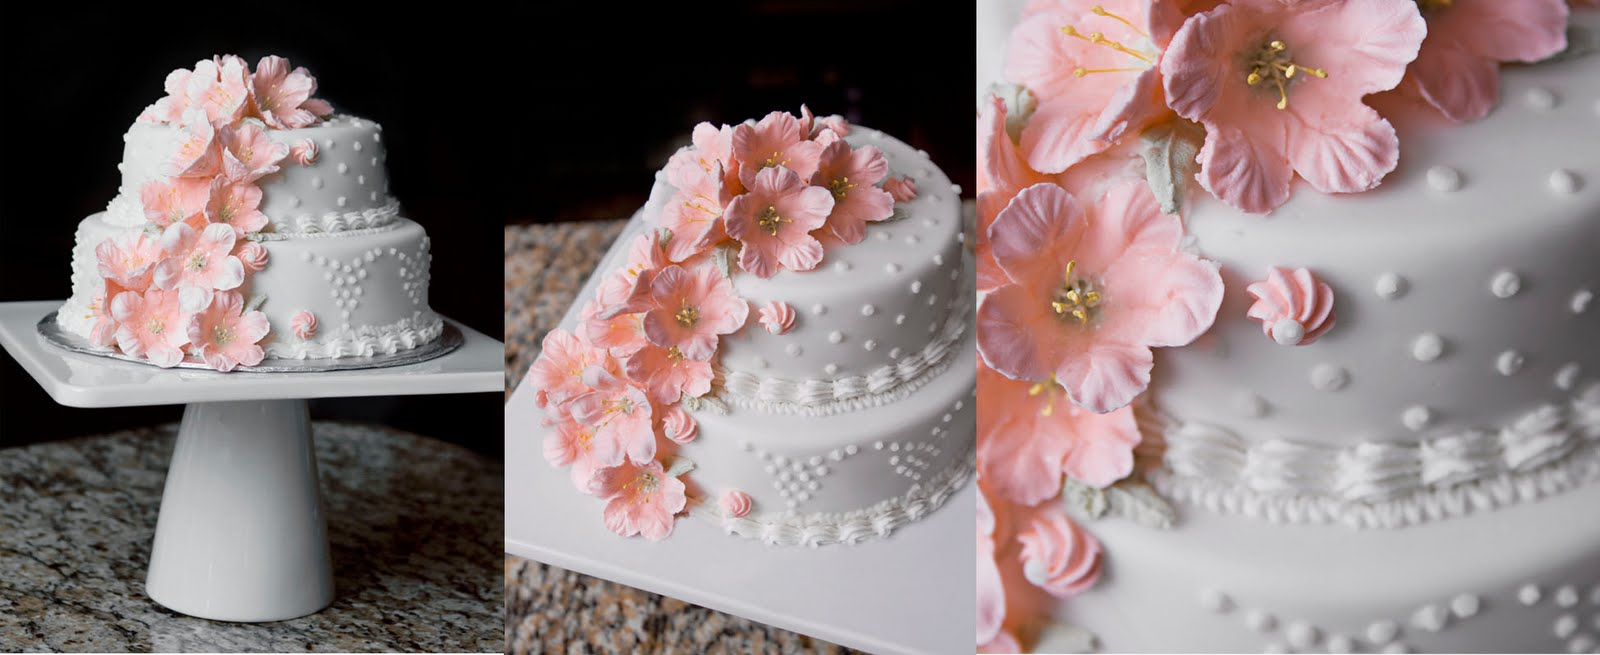 Cake With Royal Icing Flowers : Cakes by L.E.: Gallery